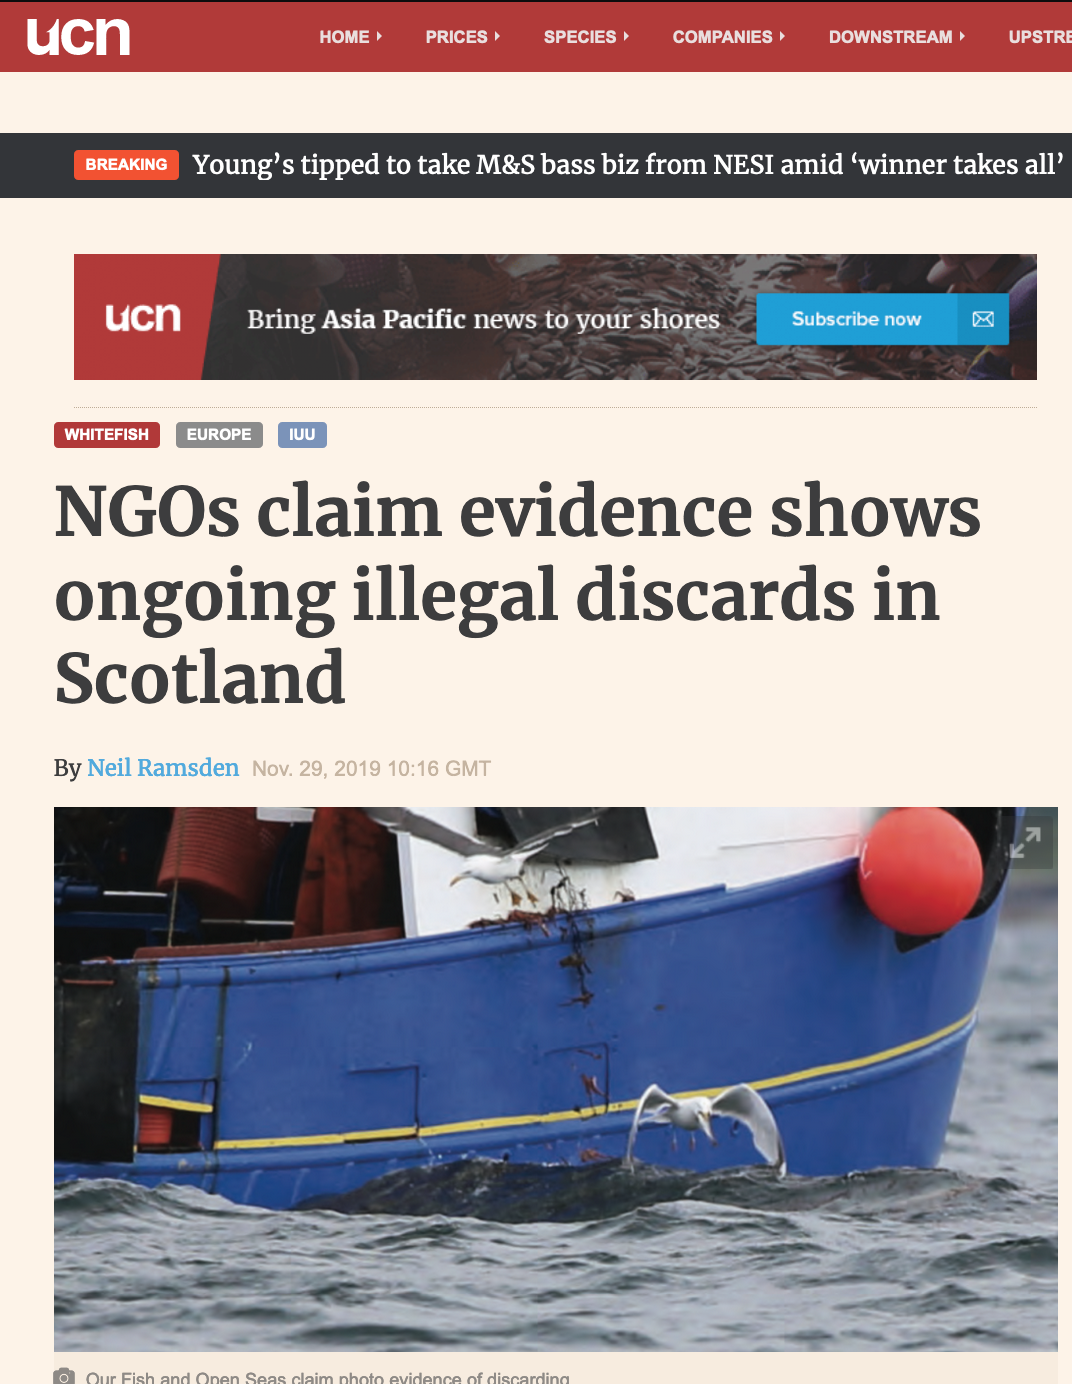 NGOs claim evidence shows ongoing illegal discards in Scotland